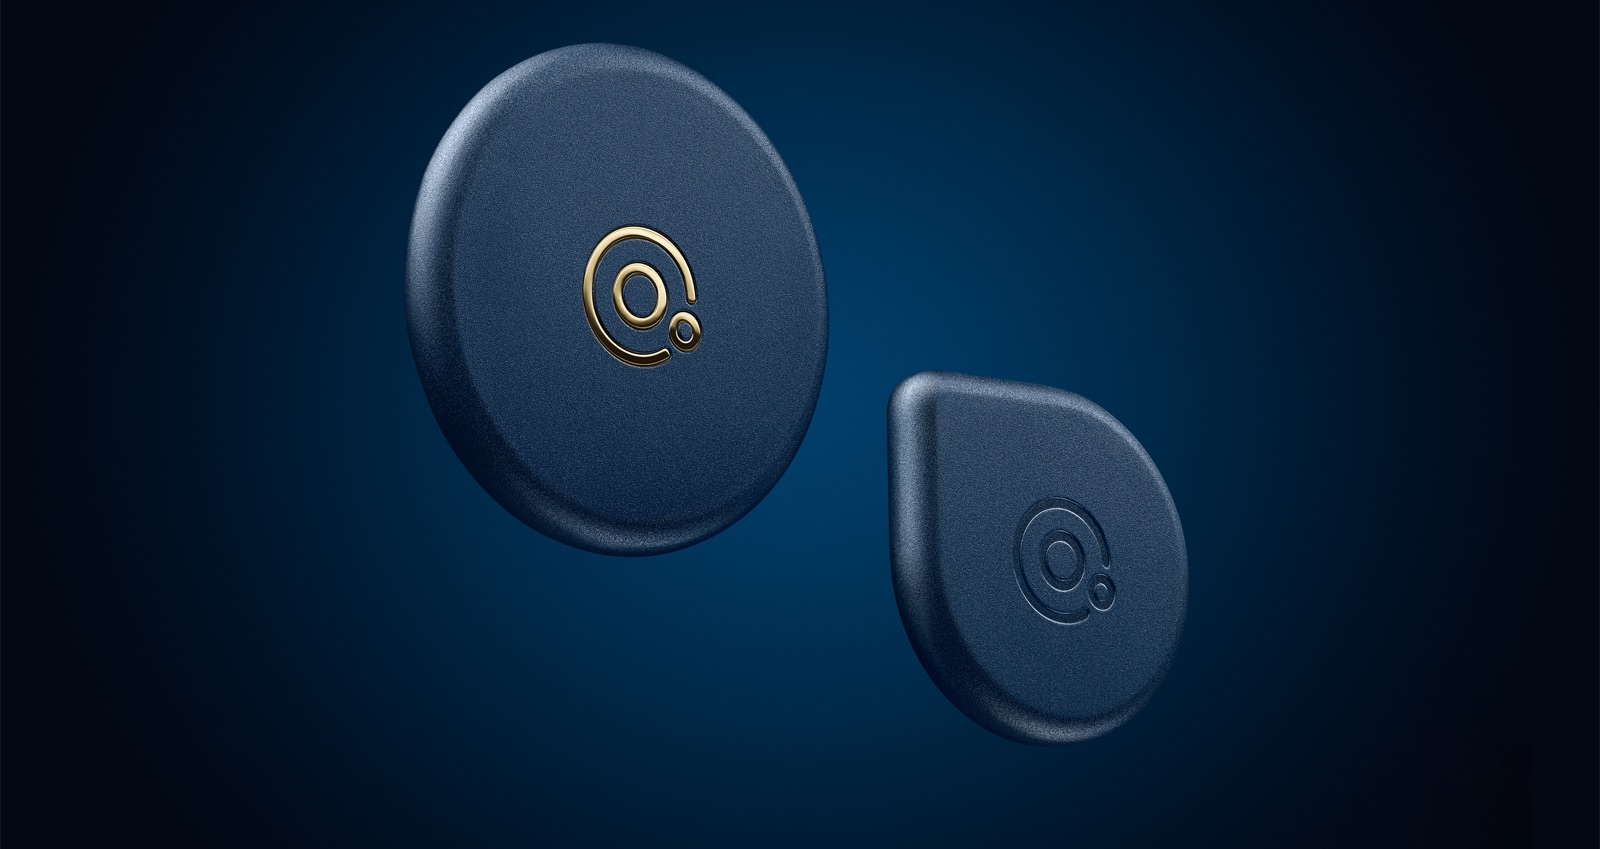 CES – Adero's Smart Tags and Taglets Help Make Sure You Never Leave Your Stuff Behind